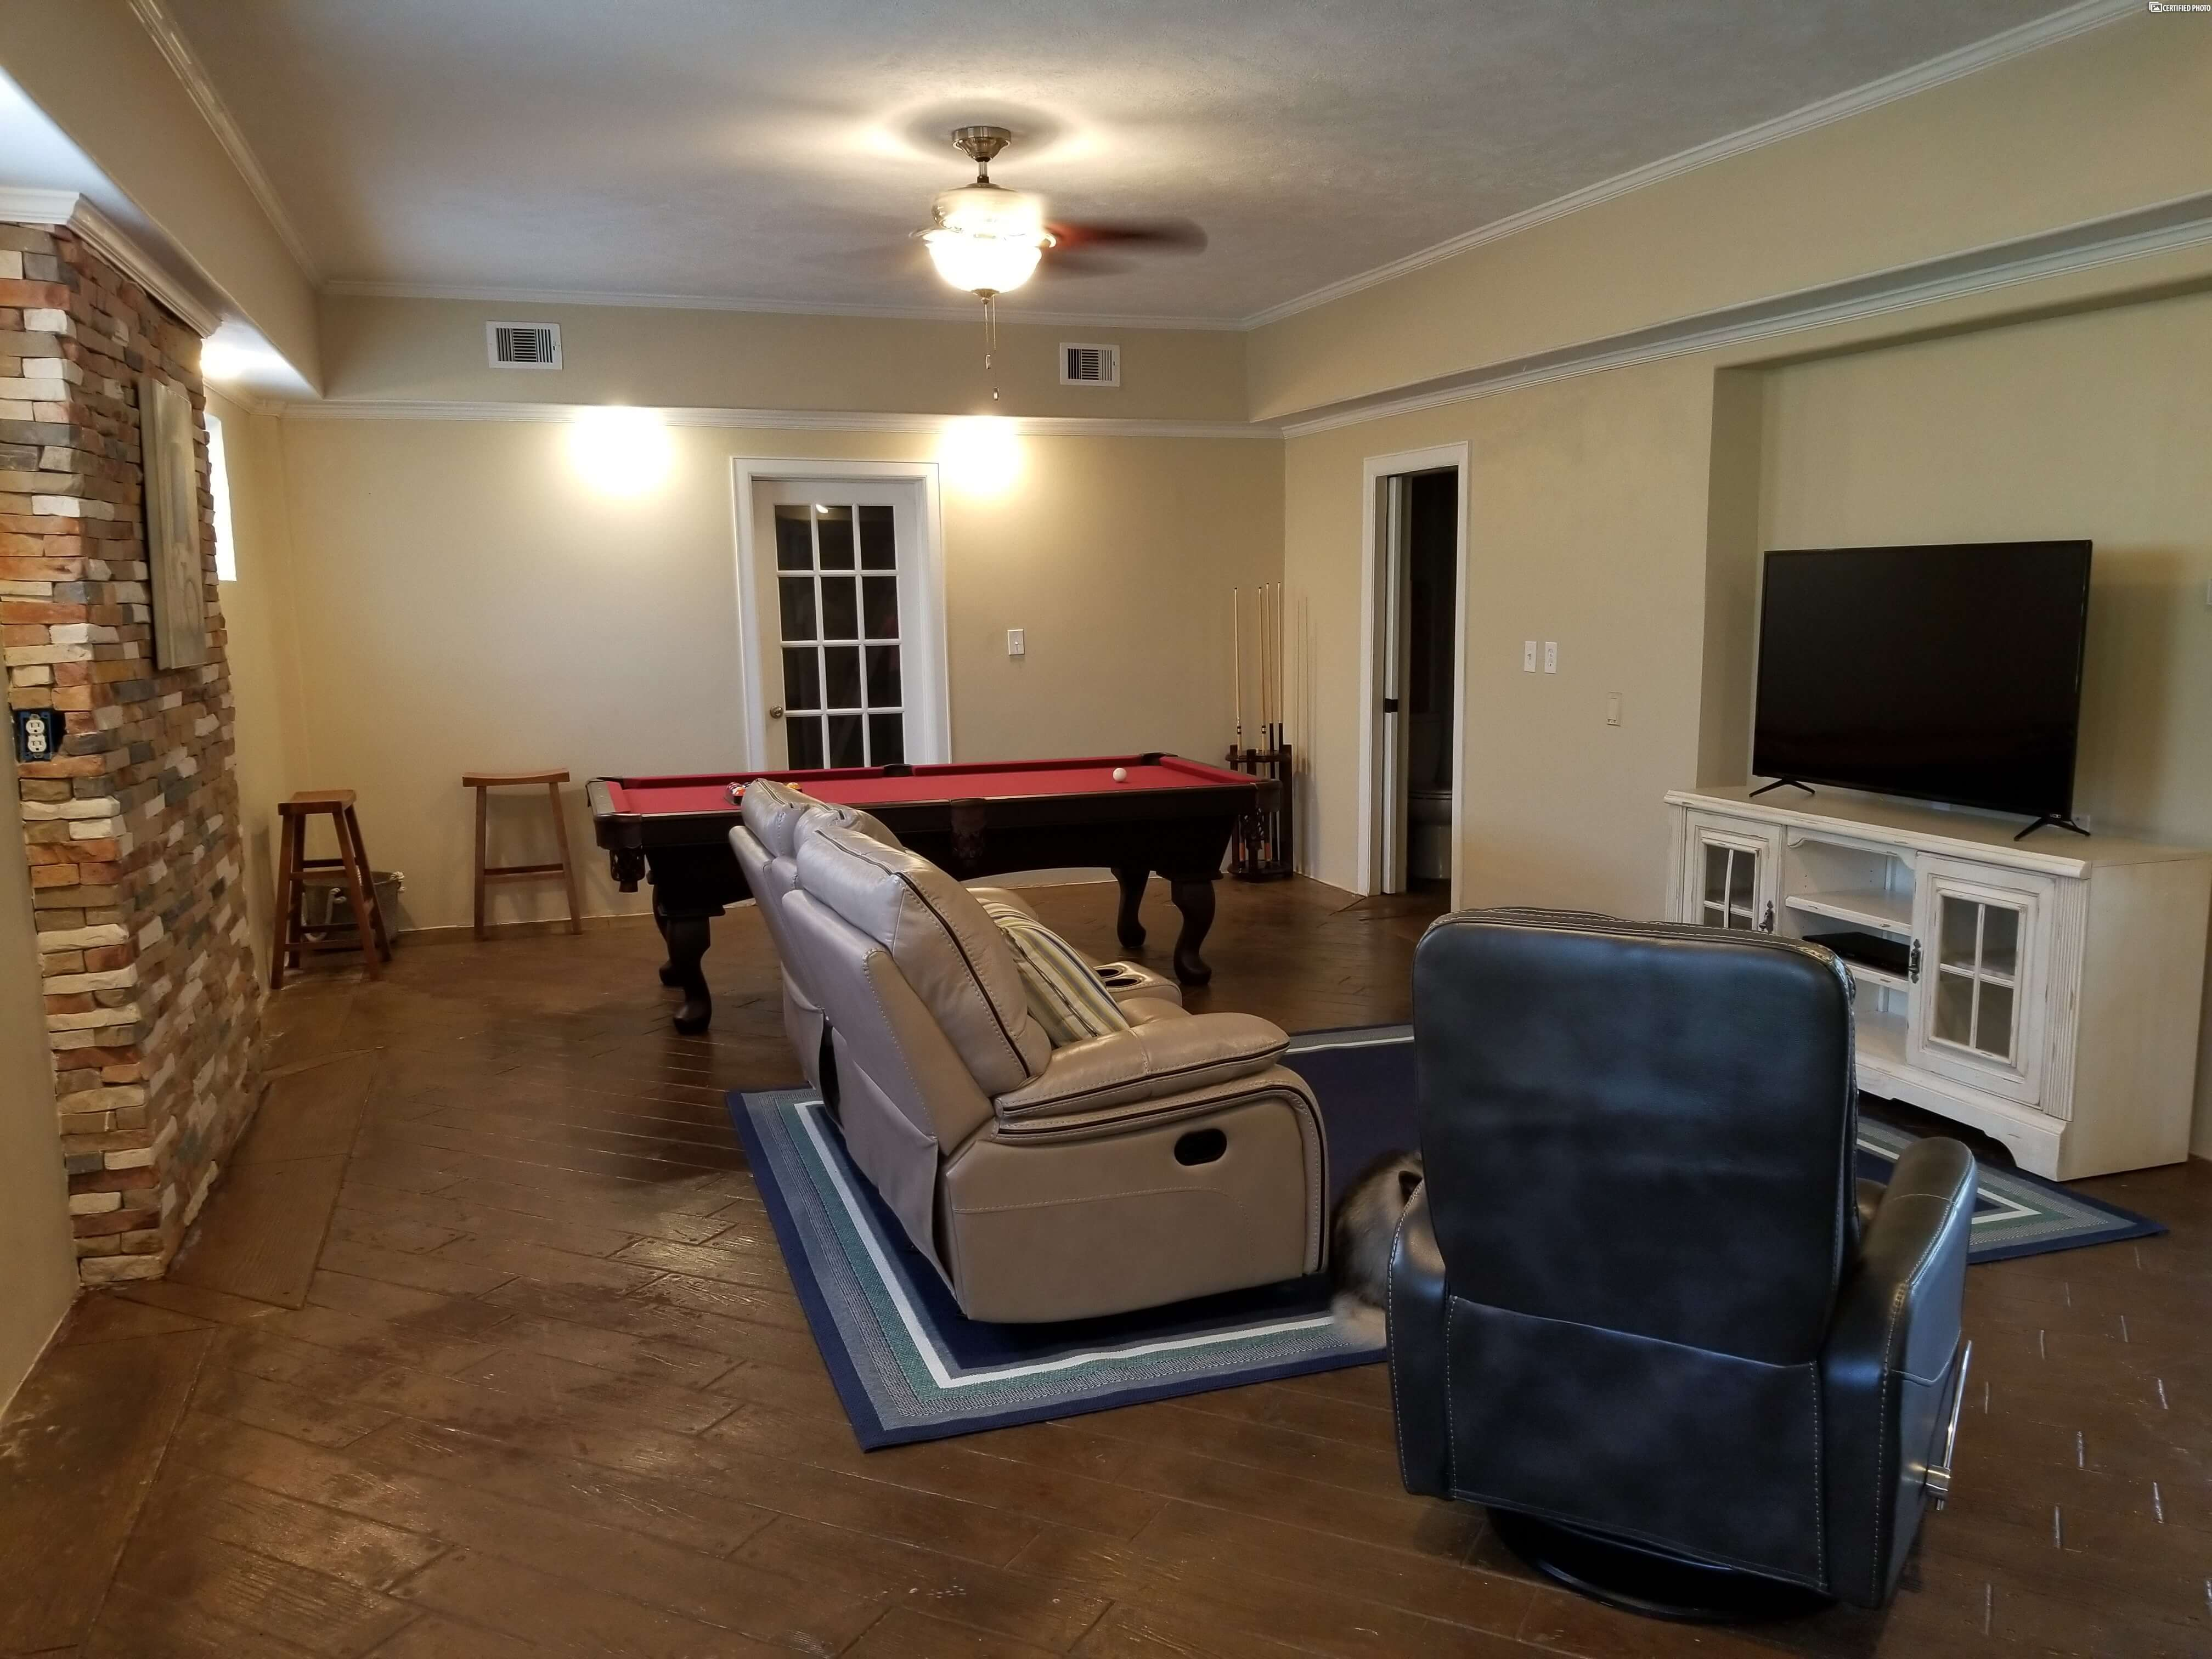 another angle of game room